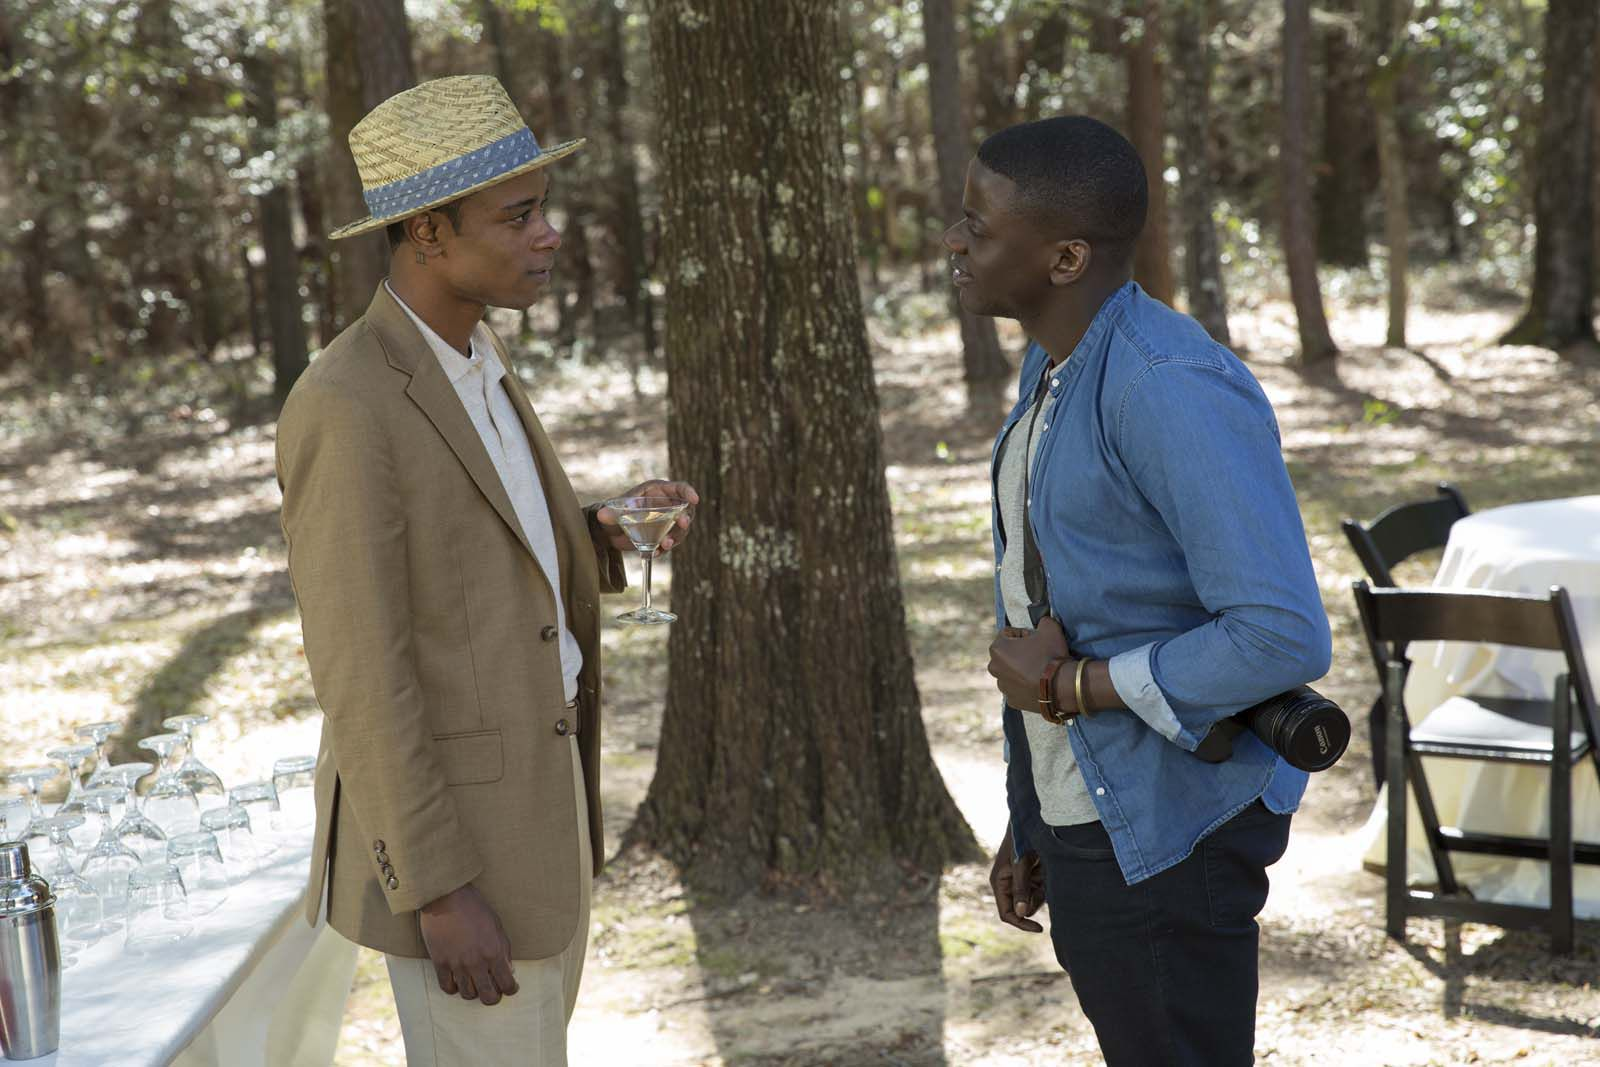 Get Out: Daniel Kaluuya, Lakeith Stanfield